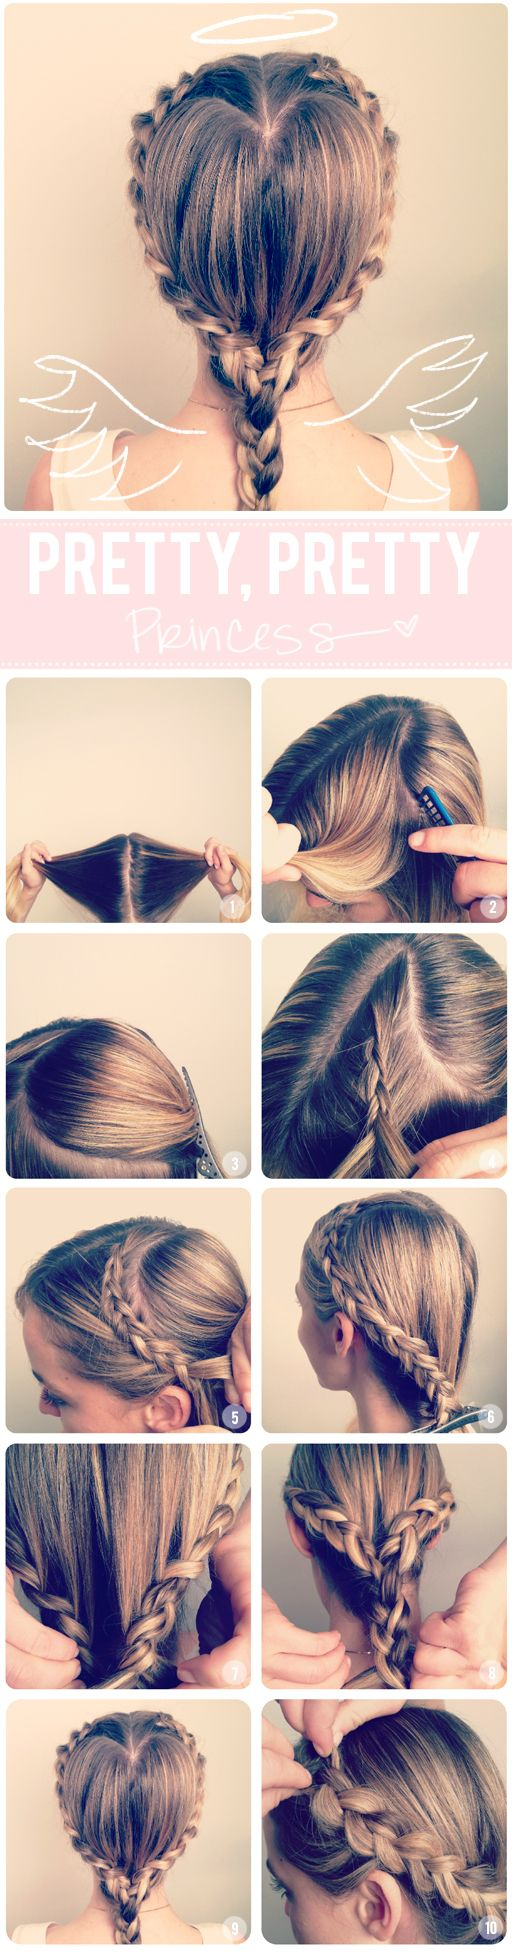 The heart braid! ?